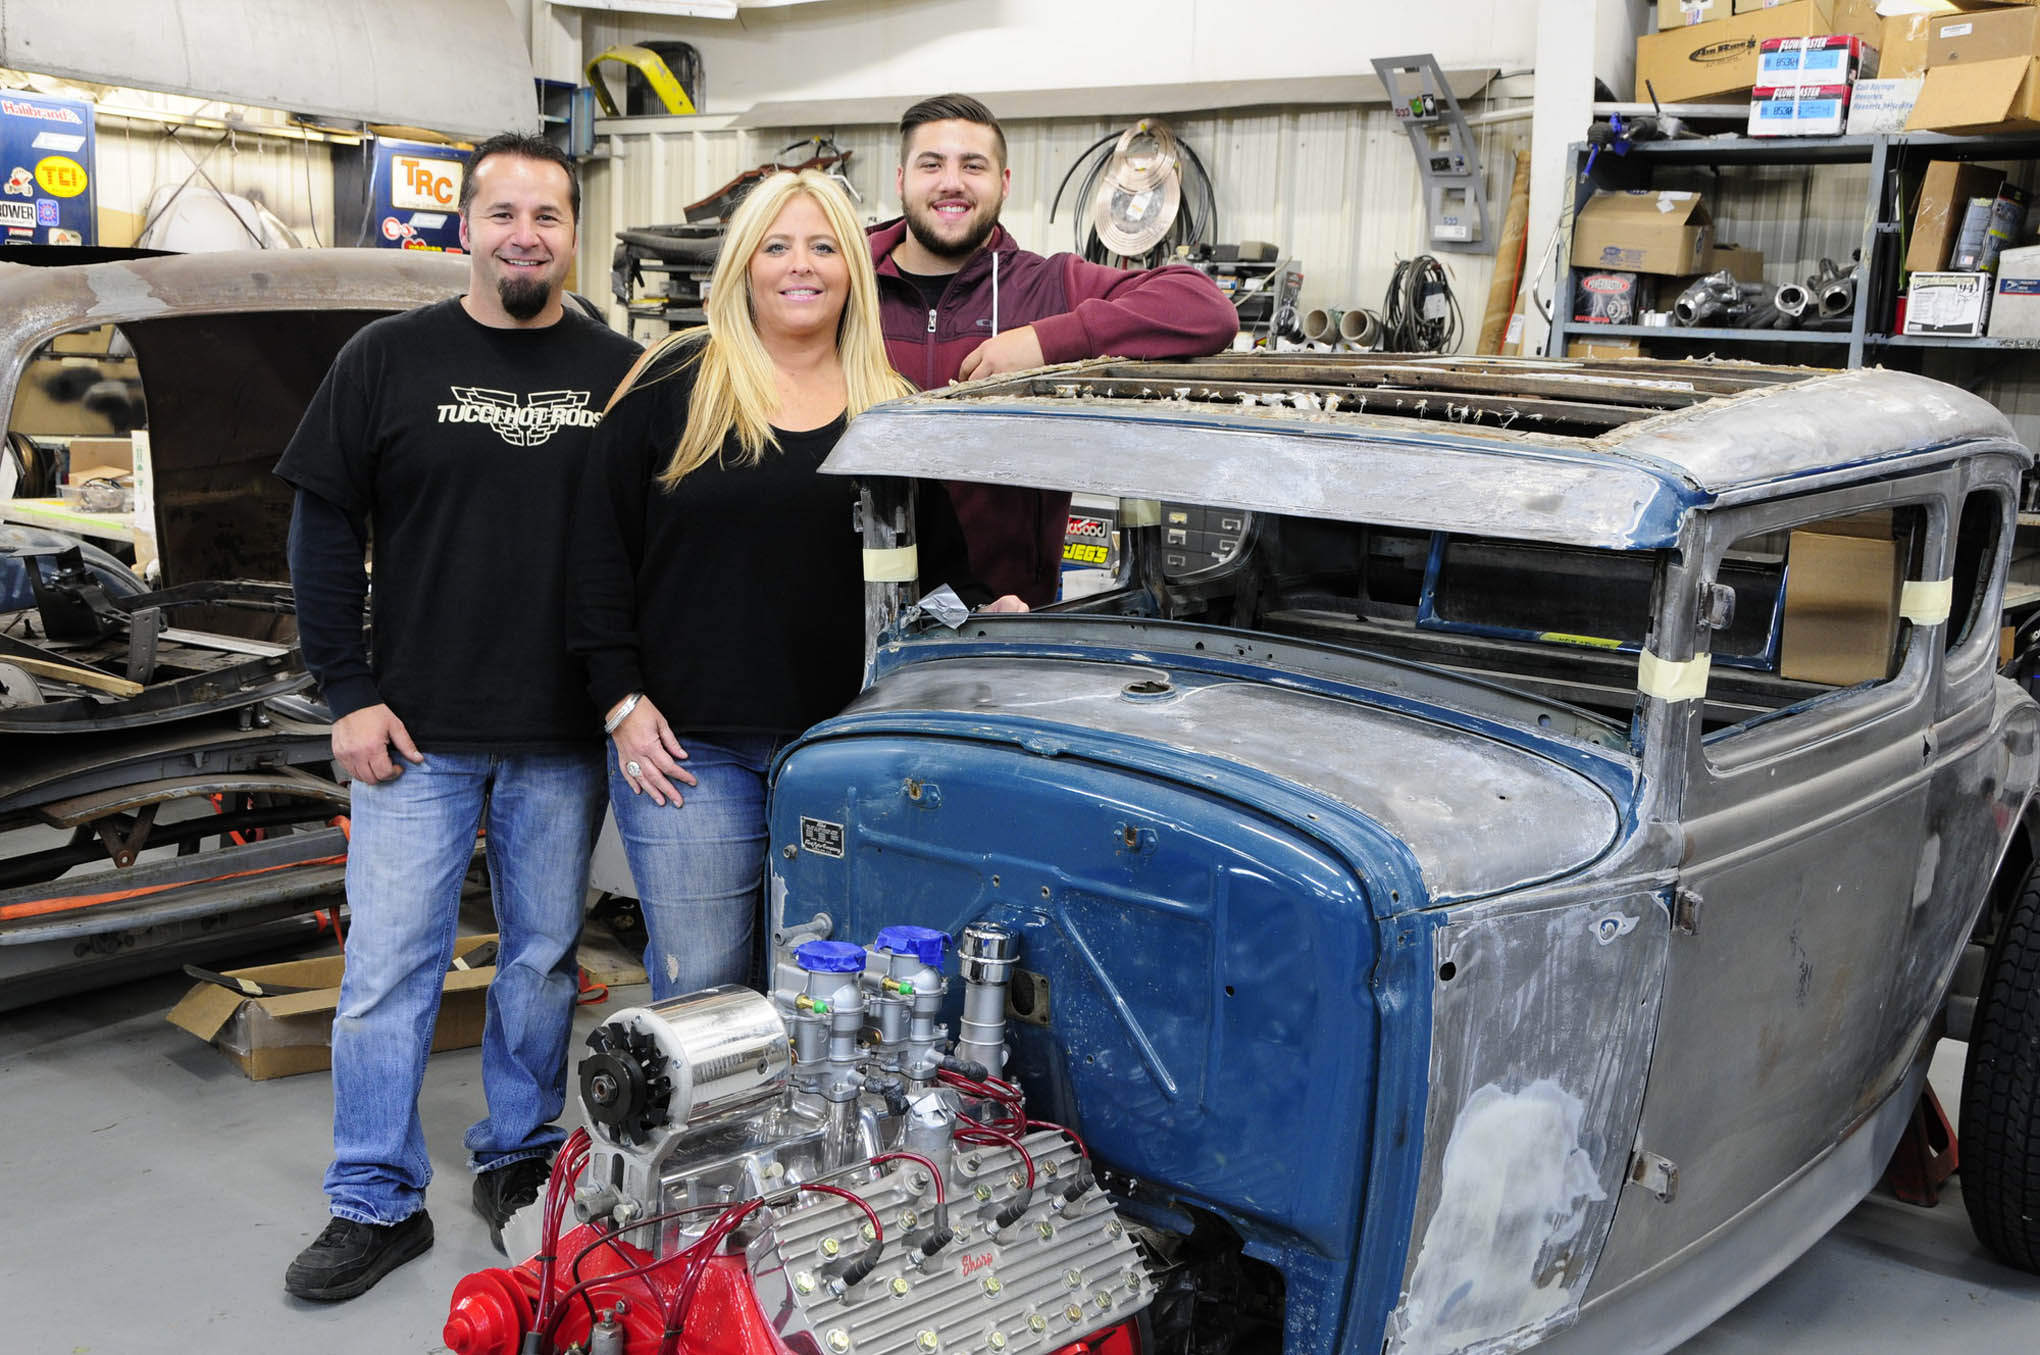 It's a family effort at Tucci Hot Rods to keep the shop moving smoothly on a daily basis with the combined talents of Dave, his lovely wife, Jill, and son, Dom, bringing their many years of experience to the business and its clients.